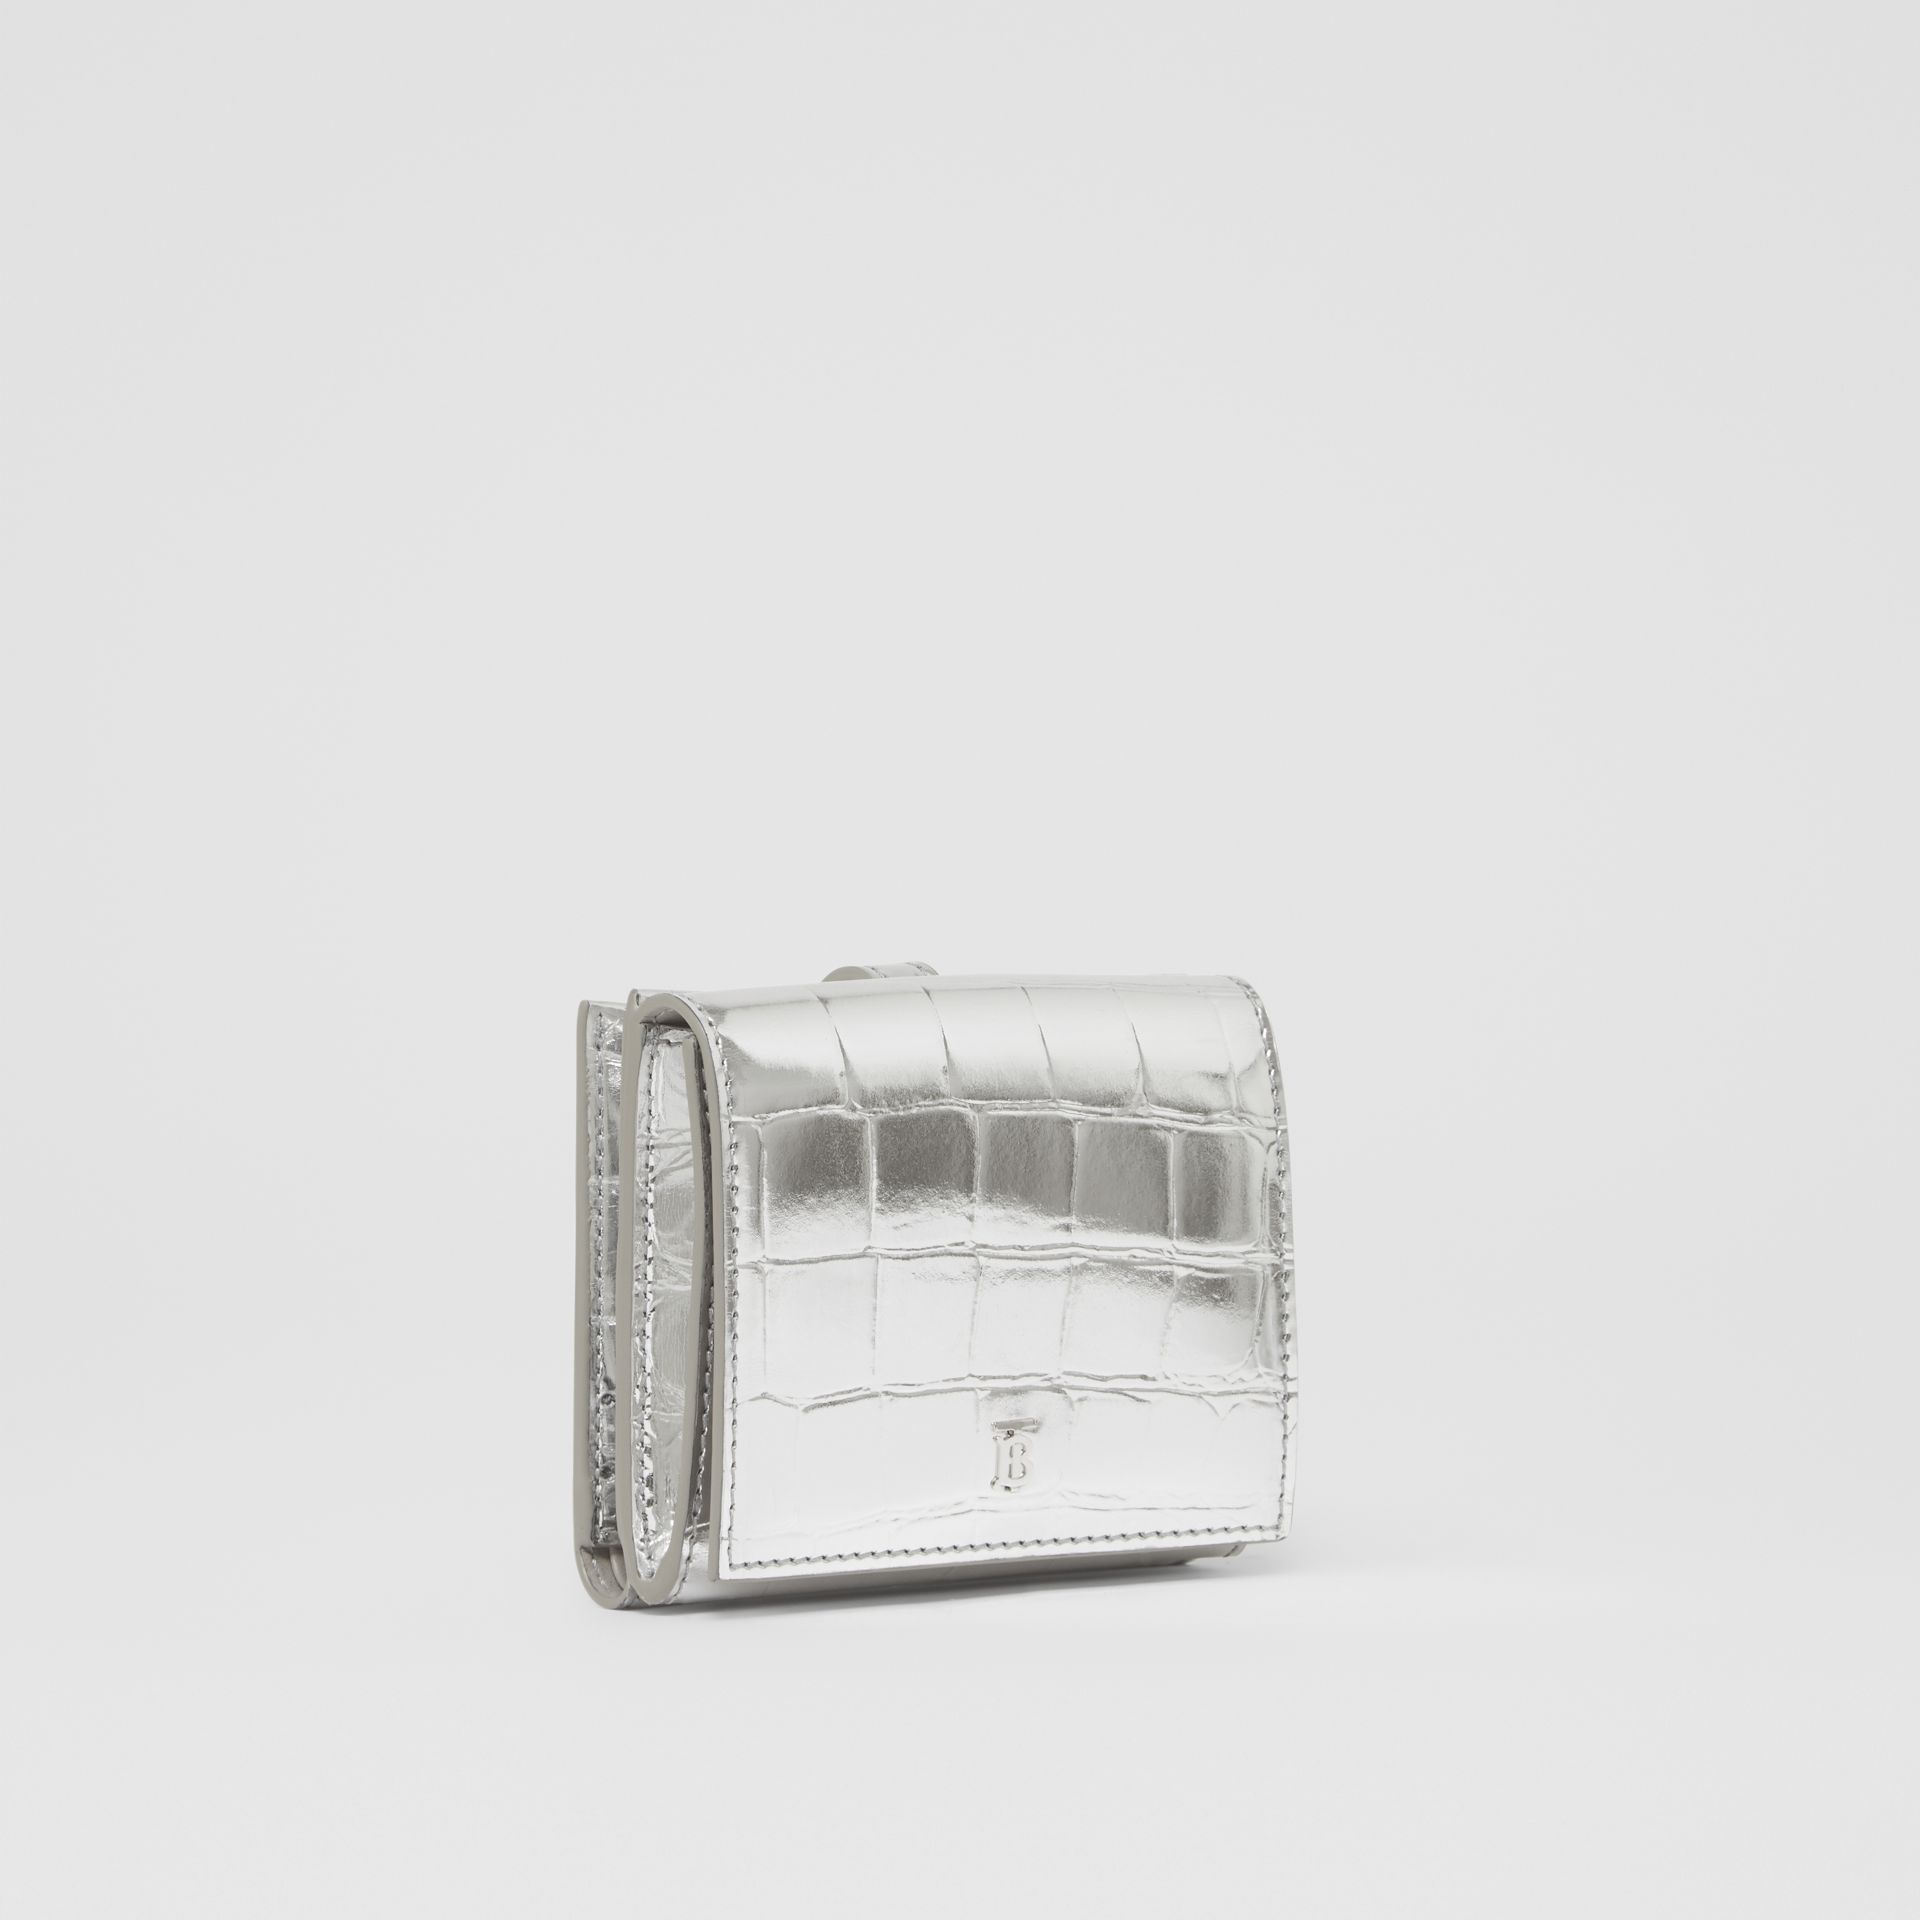 Metallic Embossed Folding Wallet in Silver - Women | Burberry United Kingdom - gallery image 4